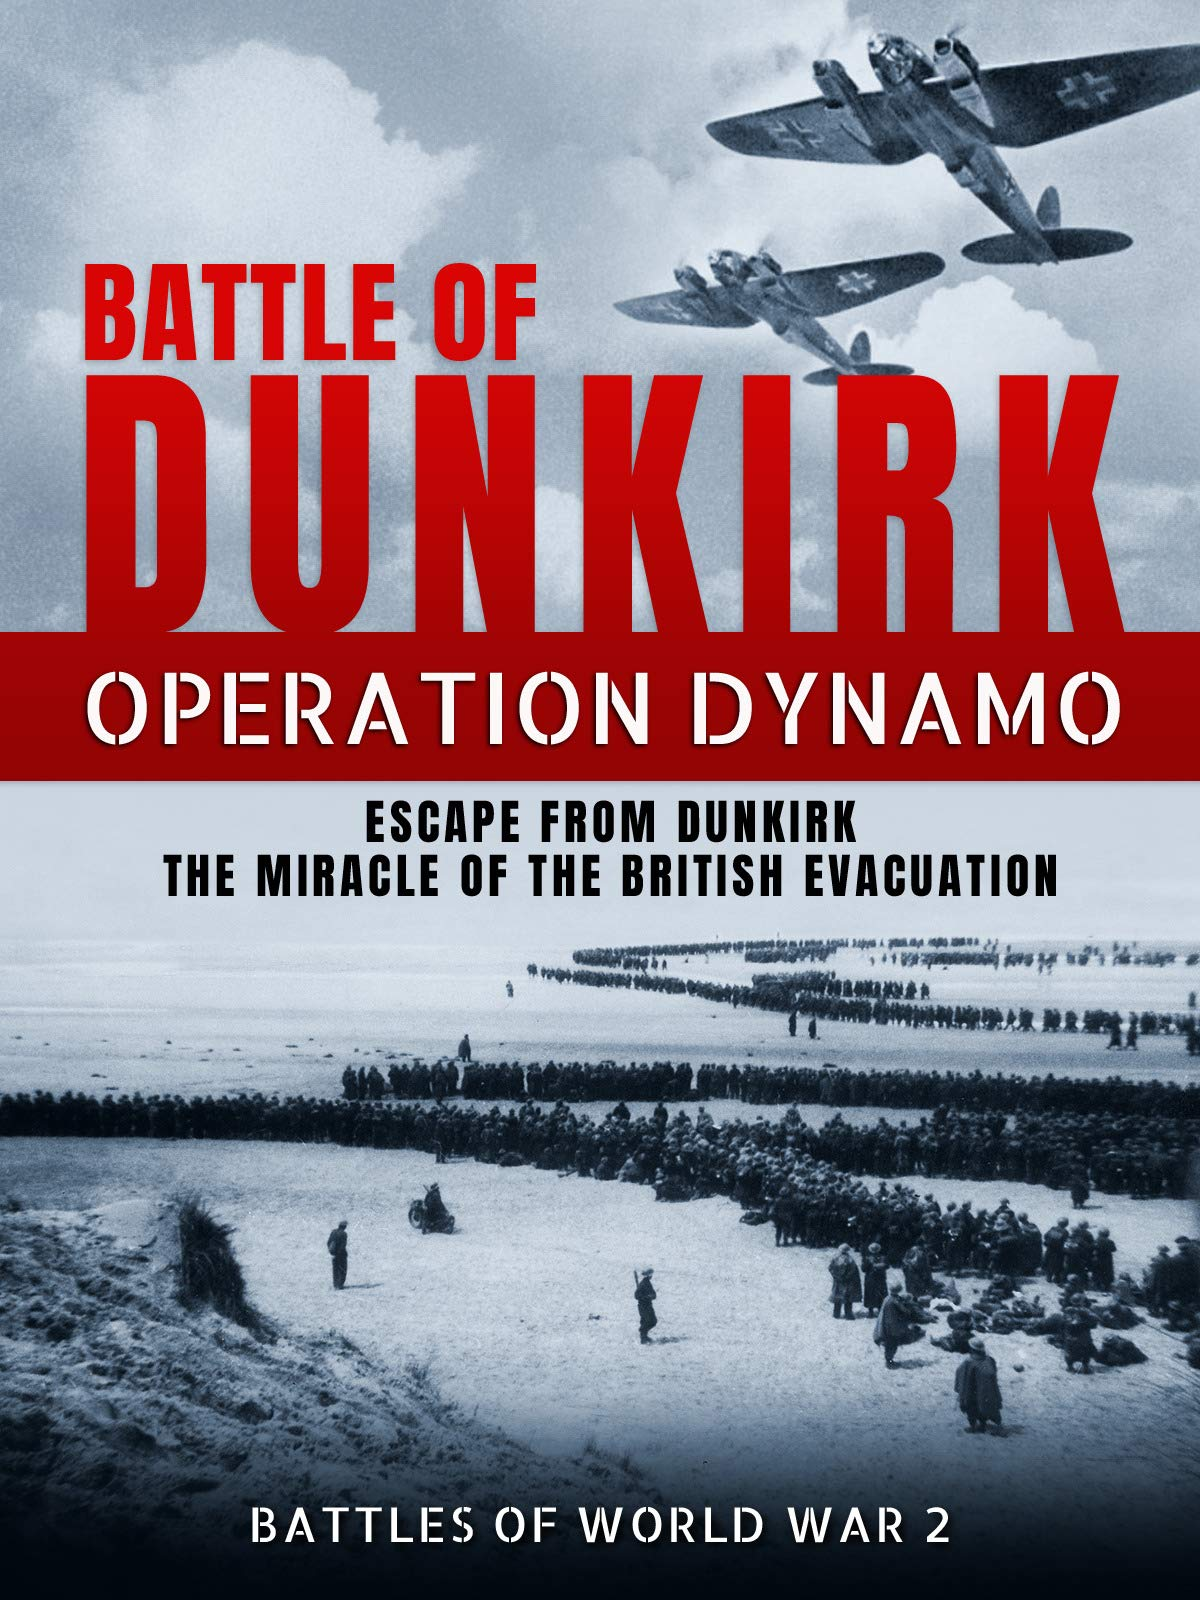 Battle of Dunkirk: Operation Dynamo - Escape from Dunkirk the Miracle of the British Evacuation (Battles of World War 2) on Amazon Prime Video UK